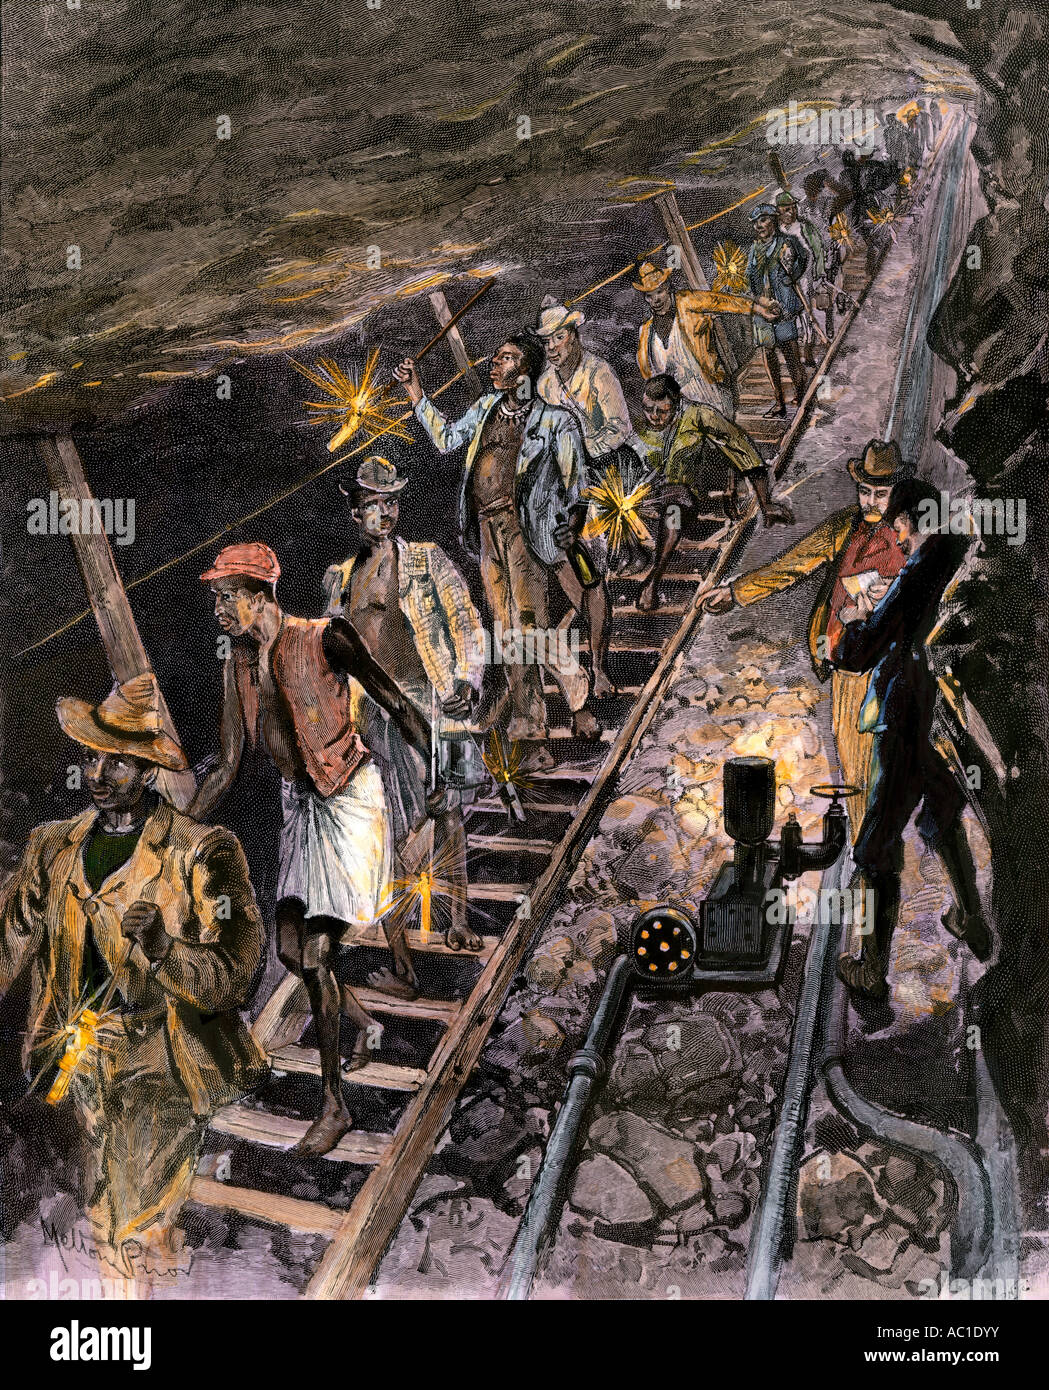 Native workers descending into a diamond mine near Johannesburg South Africa 1890s. Hand-colored halftone of an - Stock Image